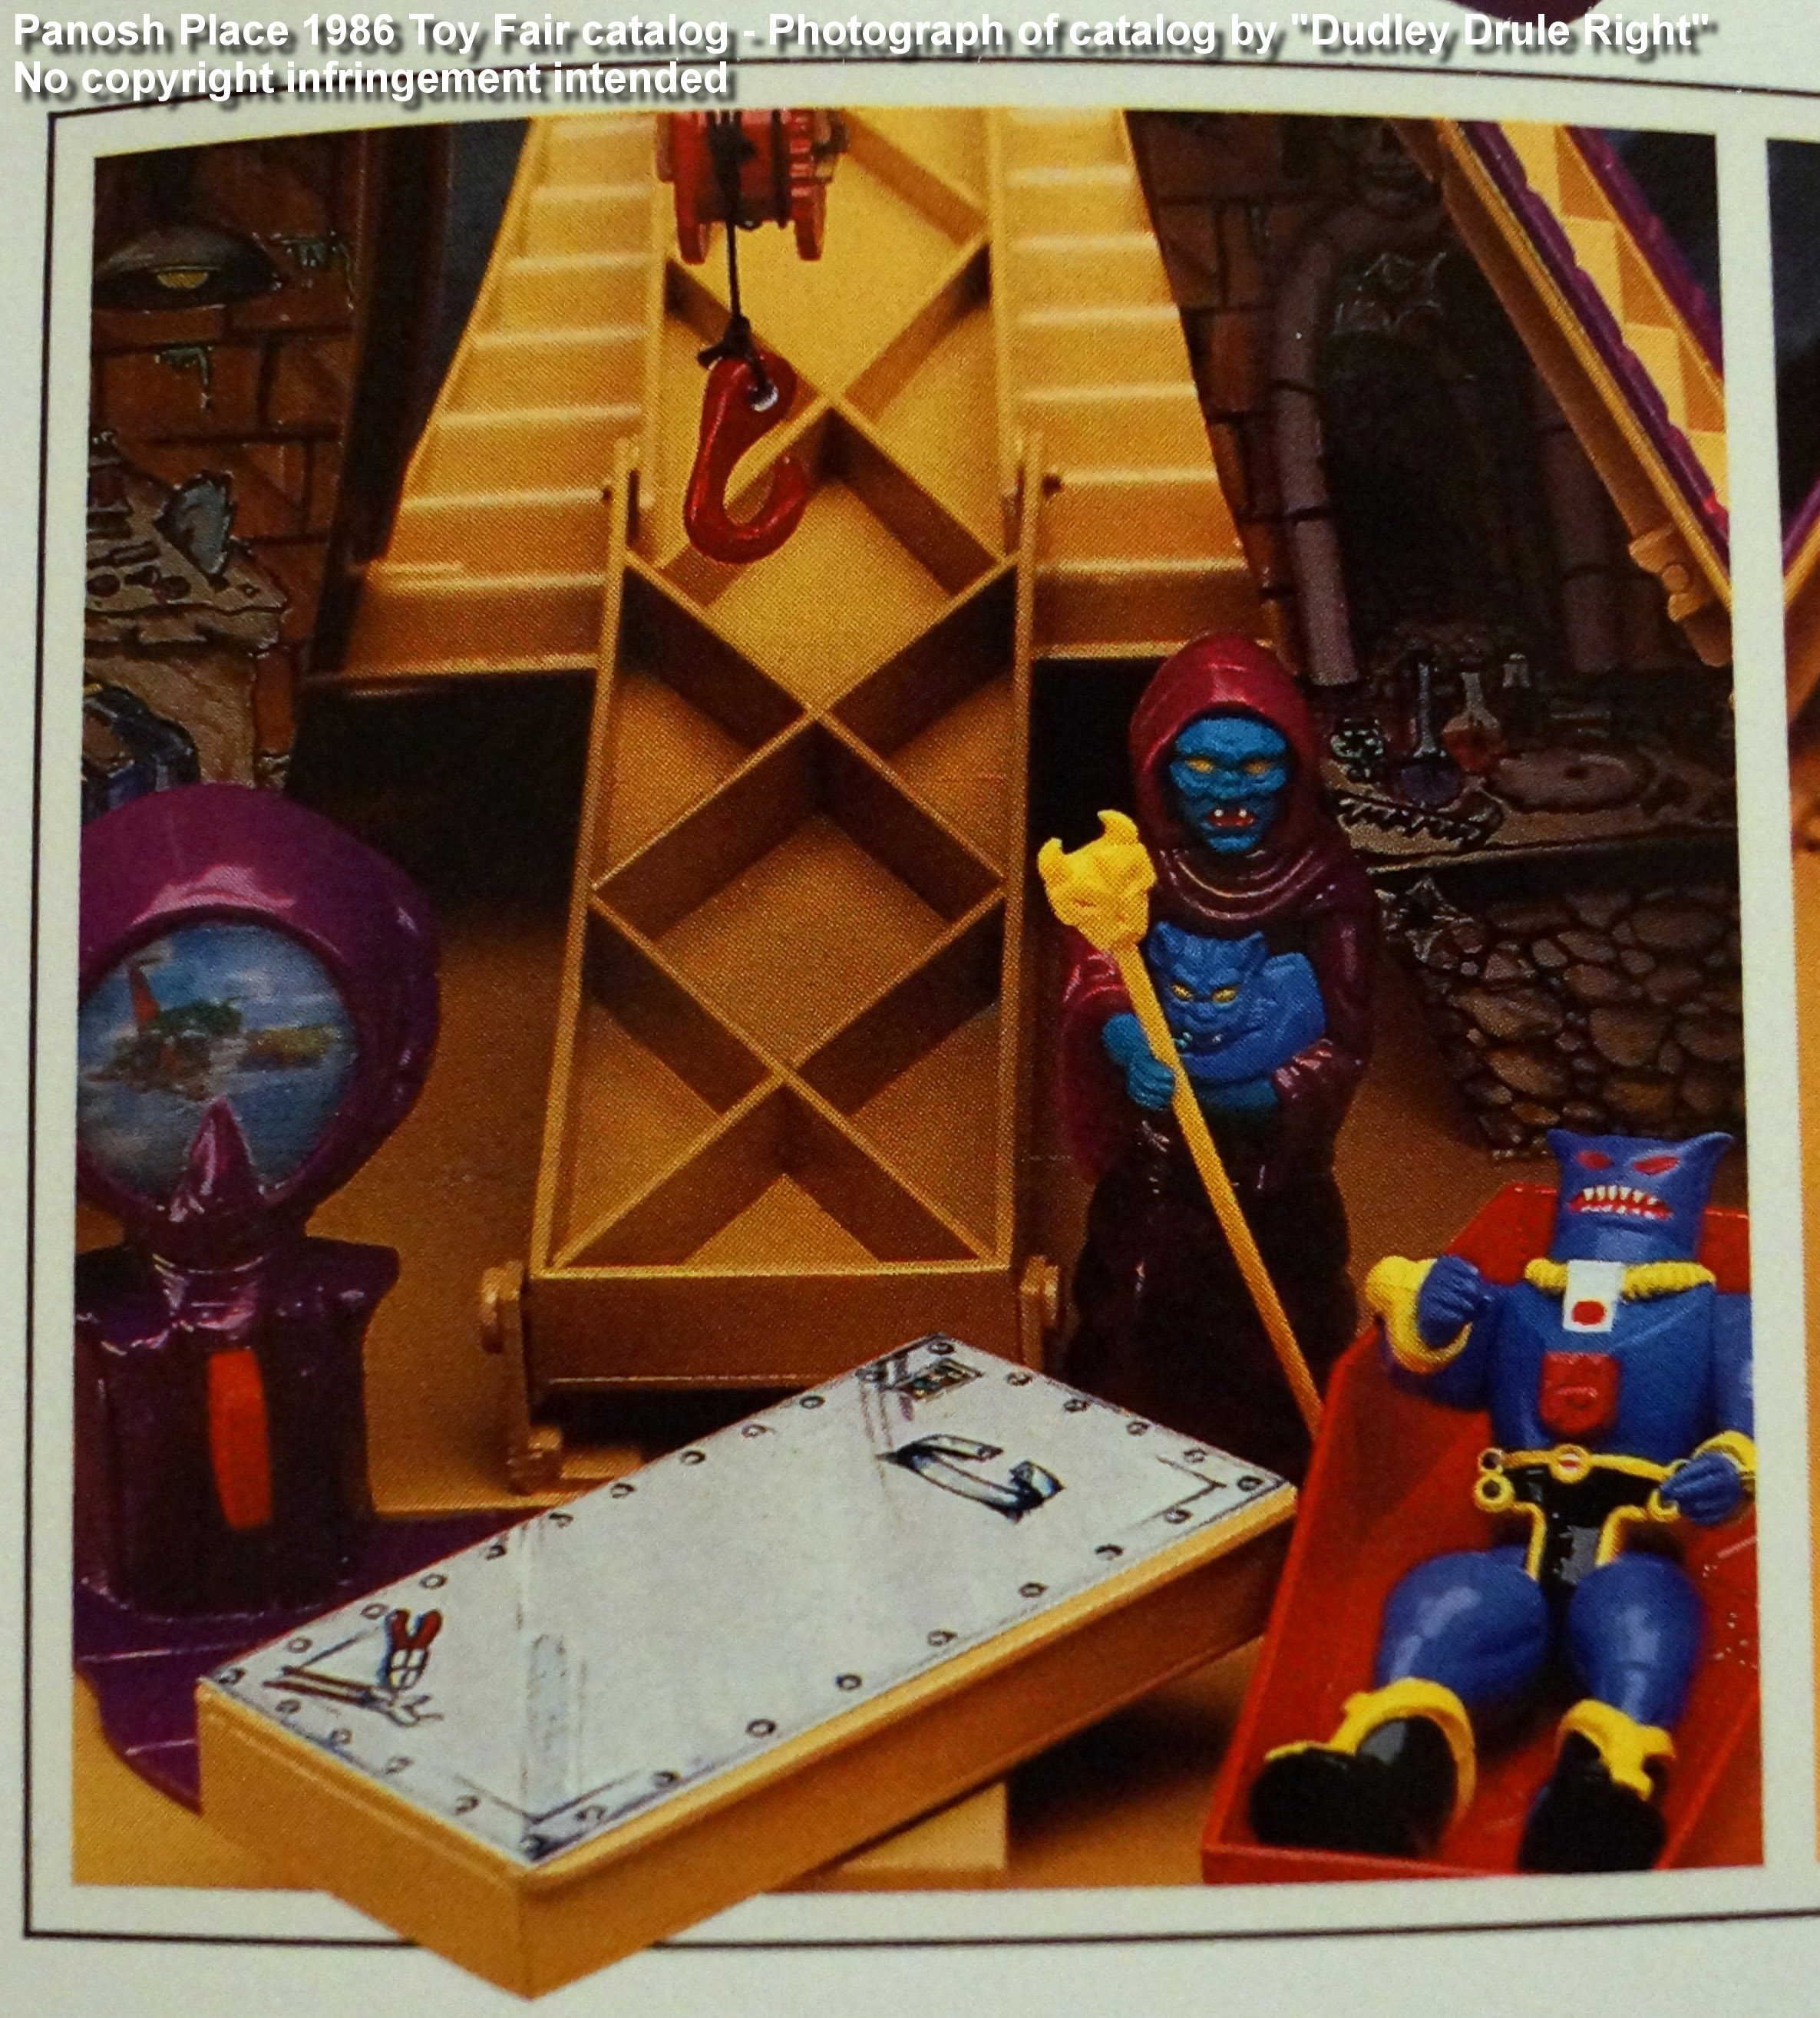 Panosh Place 1986 Toy Fair Catalog - Page 39 (Voltron Castle of Doom Haggar's lab with celestial scanner)